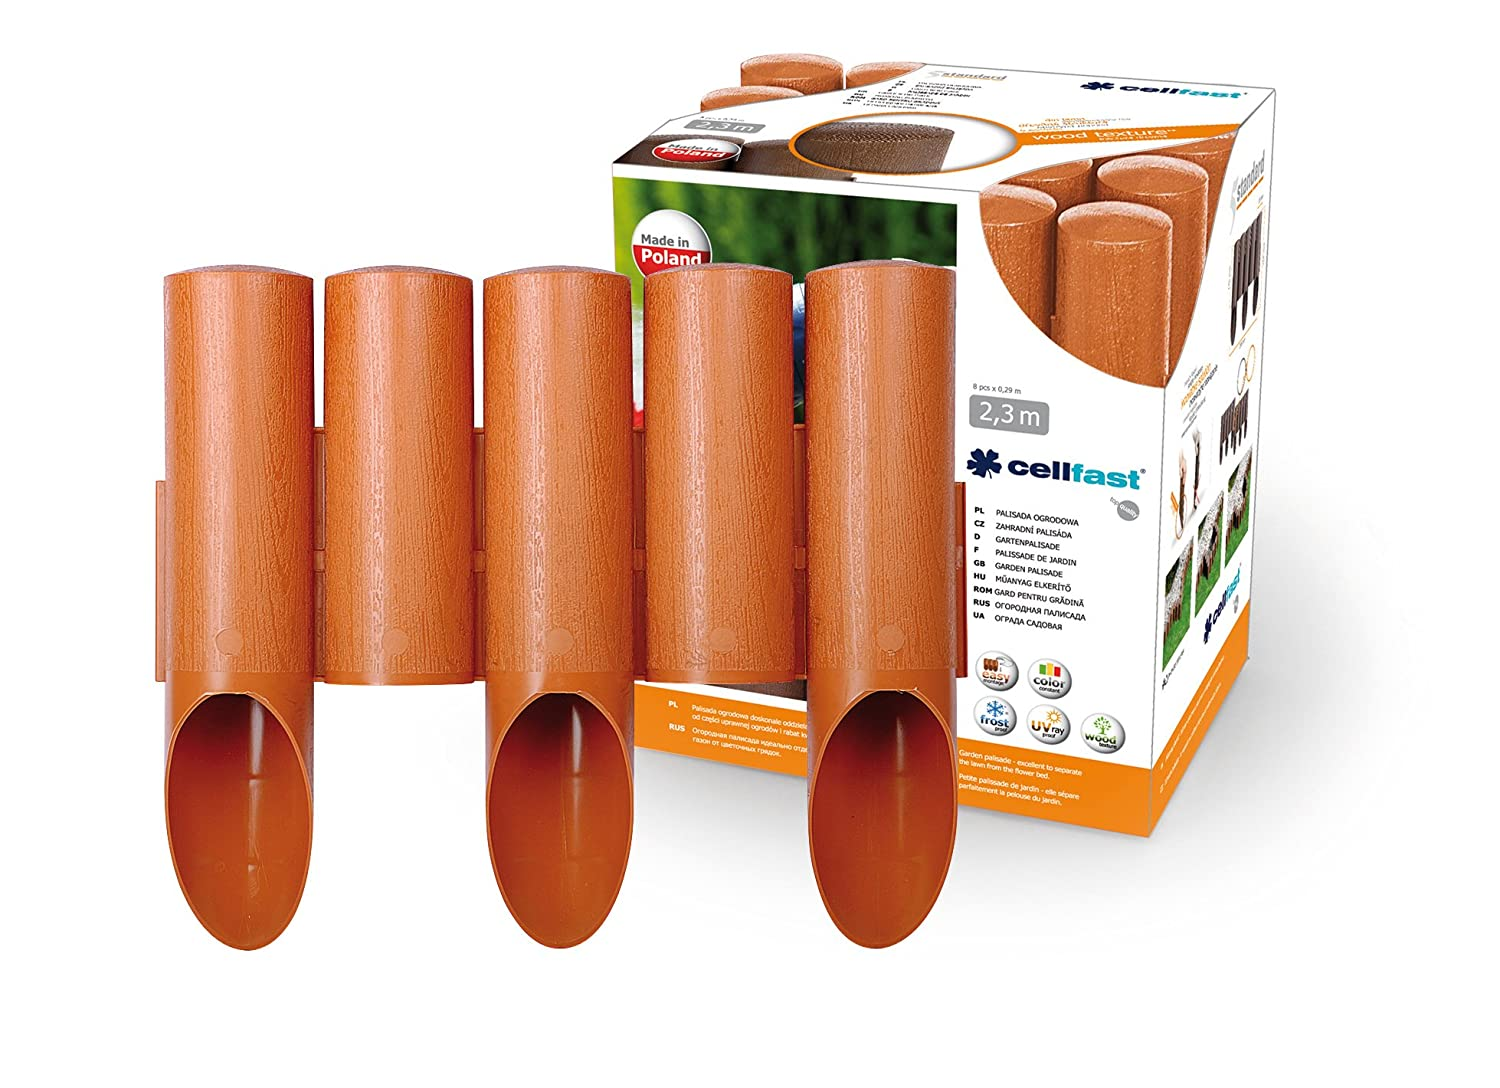 Cellfast Lawn Edging Picket Fencing, Brown, 59018288546990.21x 0.21x 0.1cm